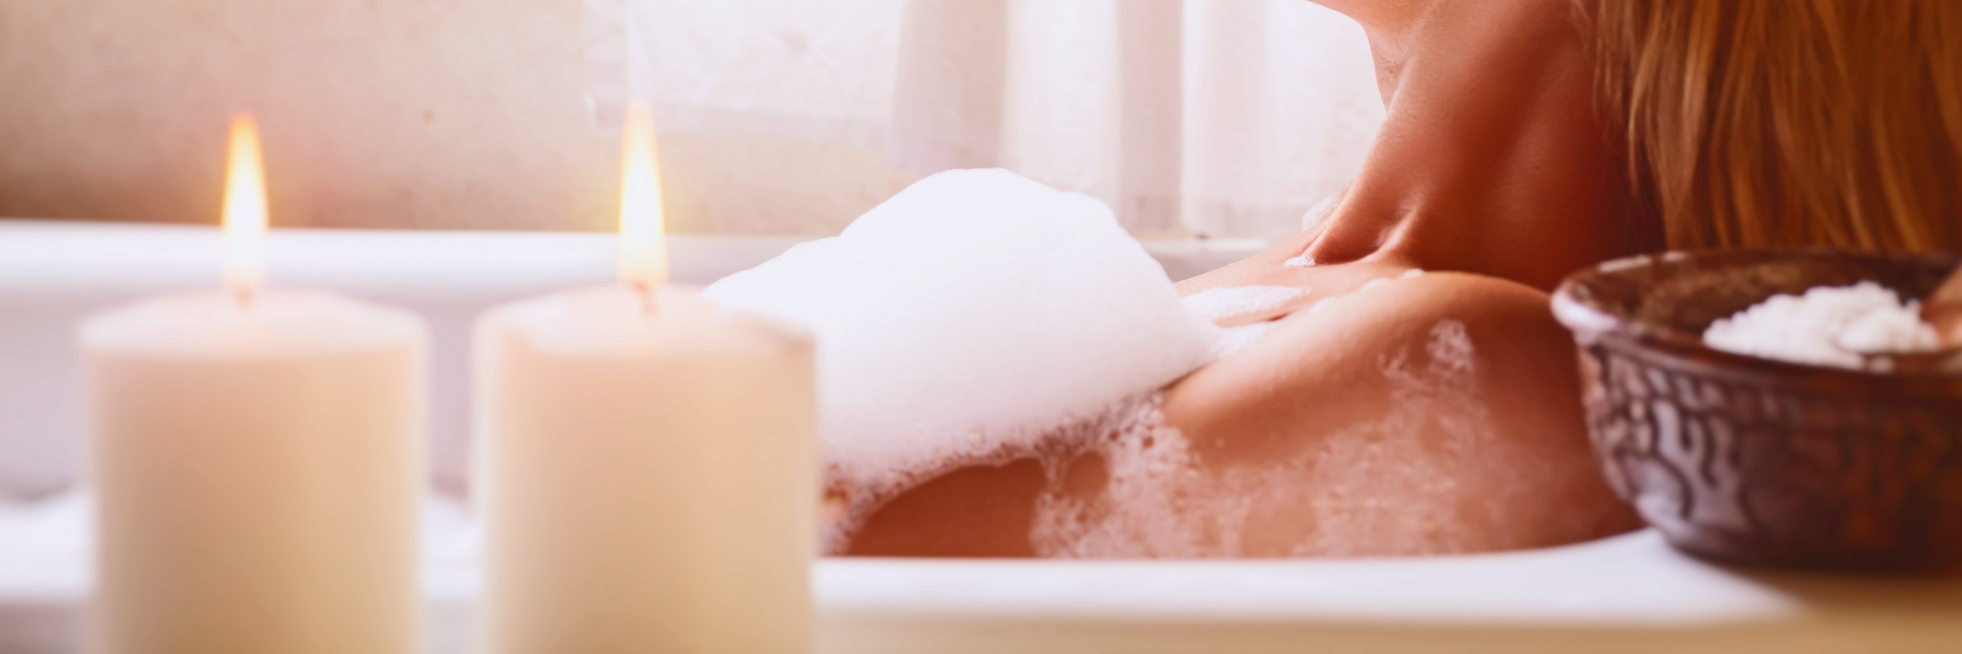 Pretty woman relaxing in bathtub, spending peaceful time in a luxury spa resort, enjoying body treatment and hygiene procedure